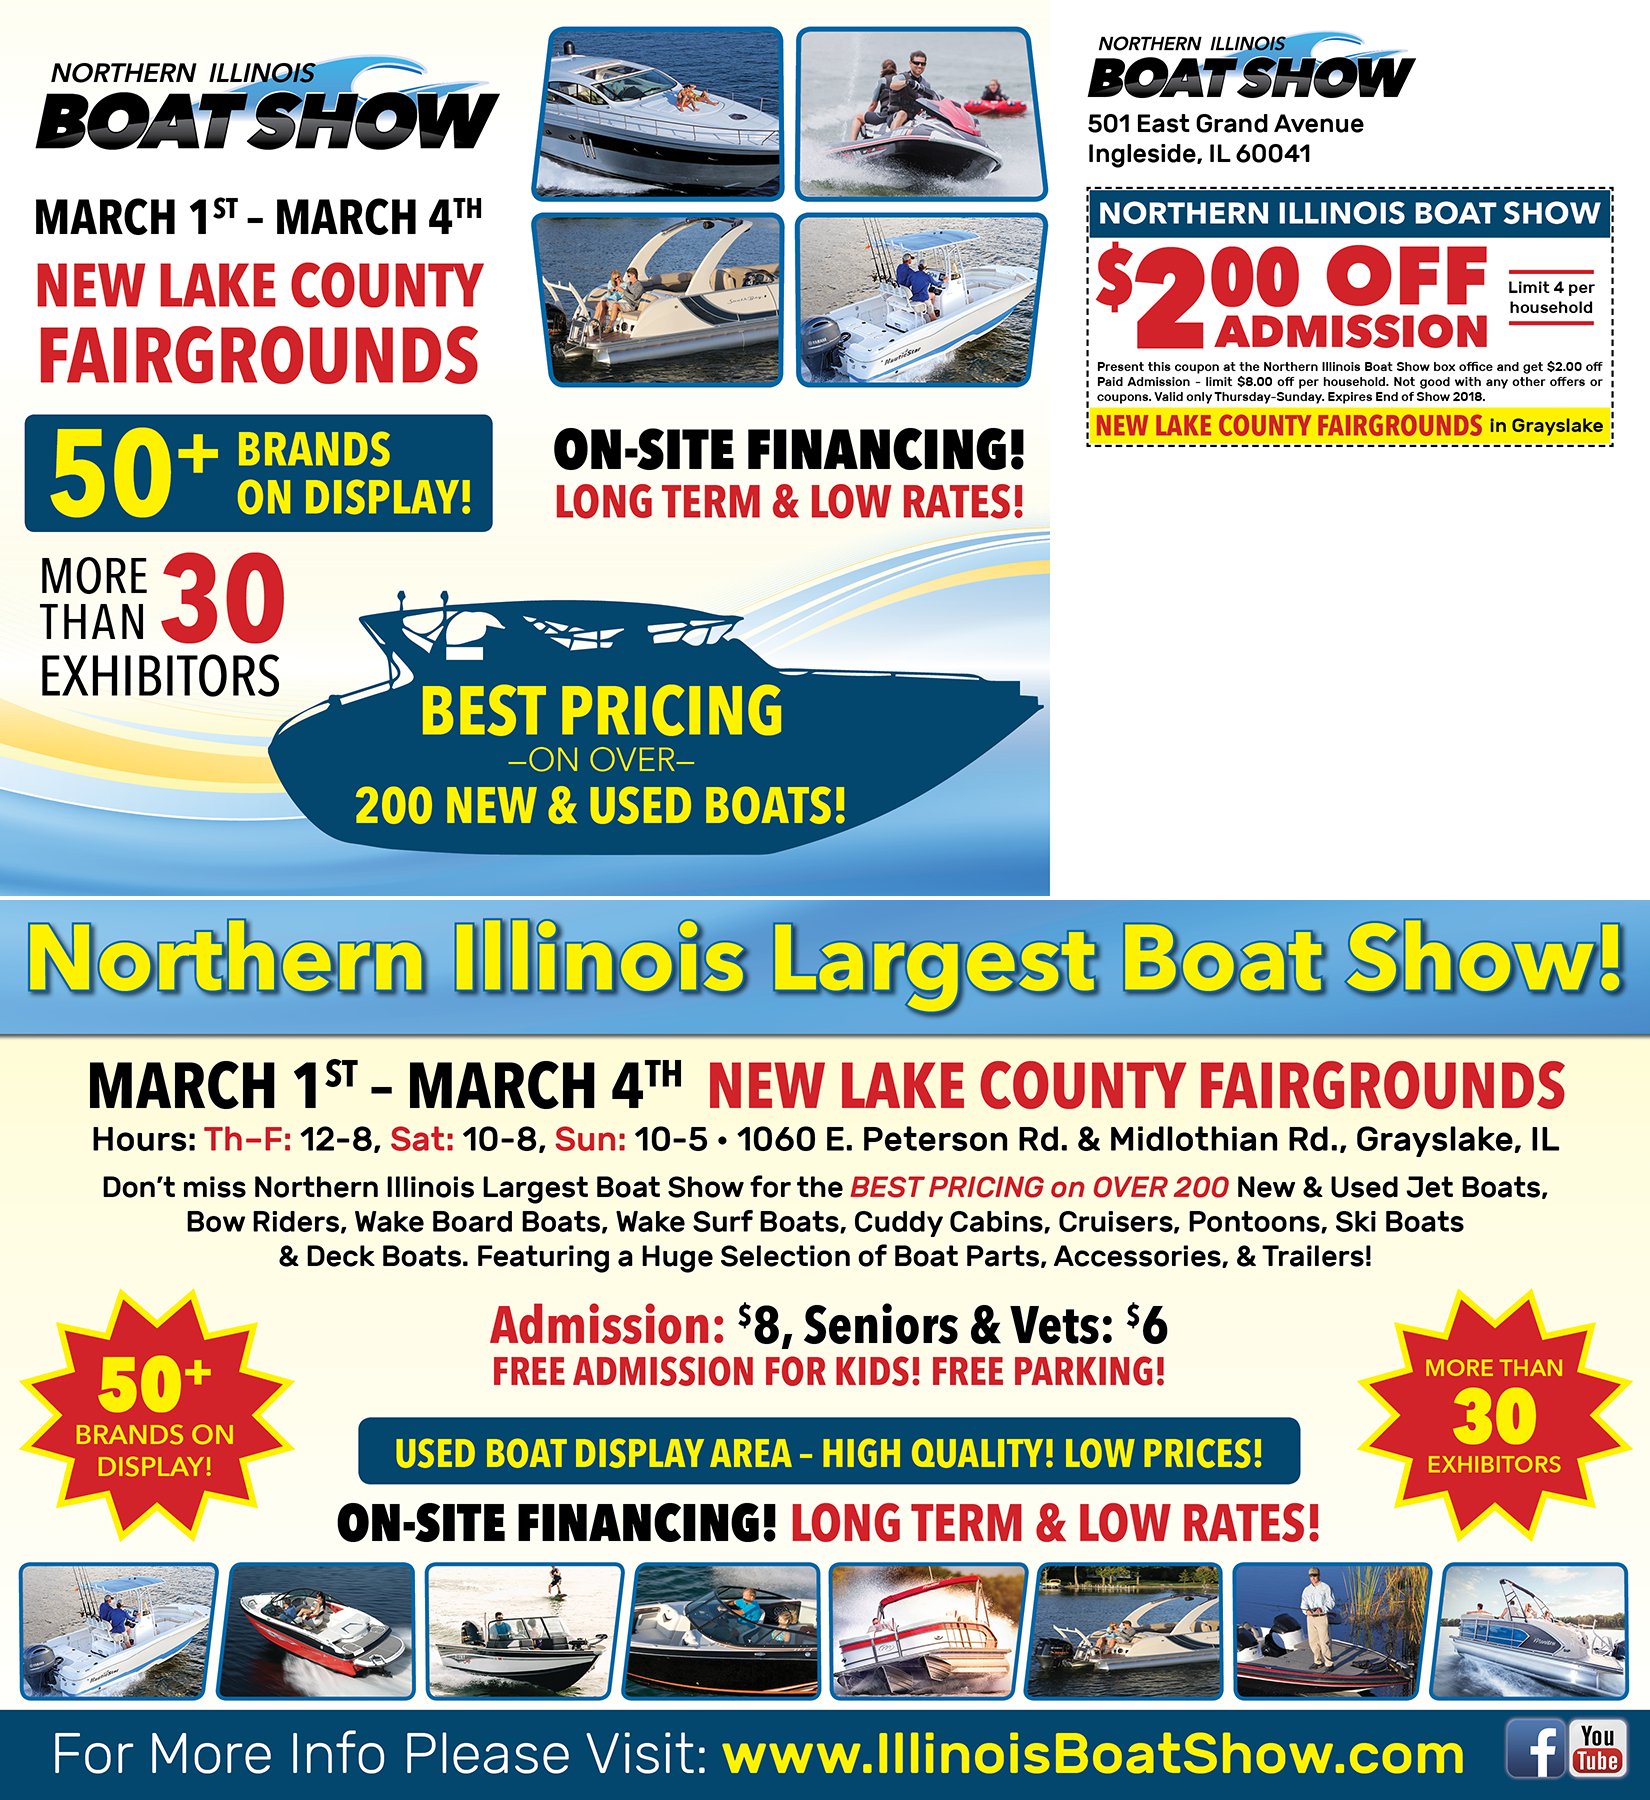 Northern Illinois Boat Show Postcard